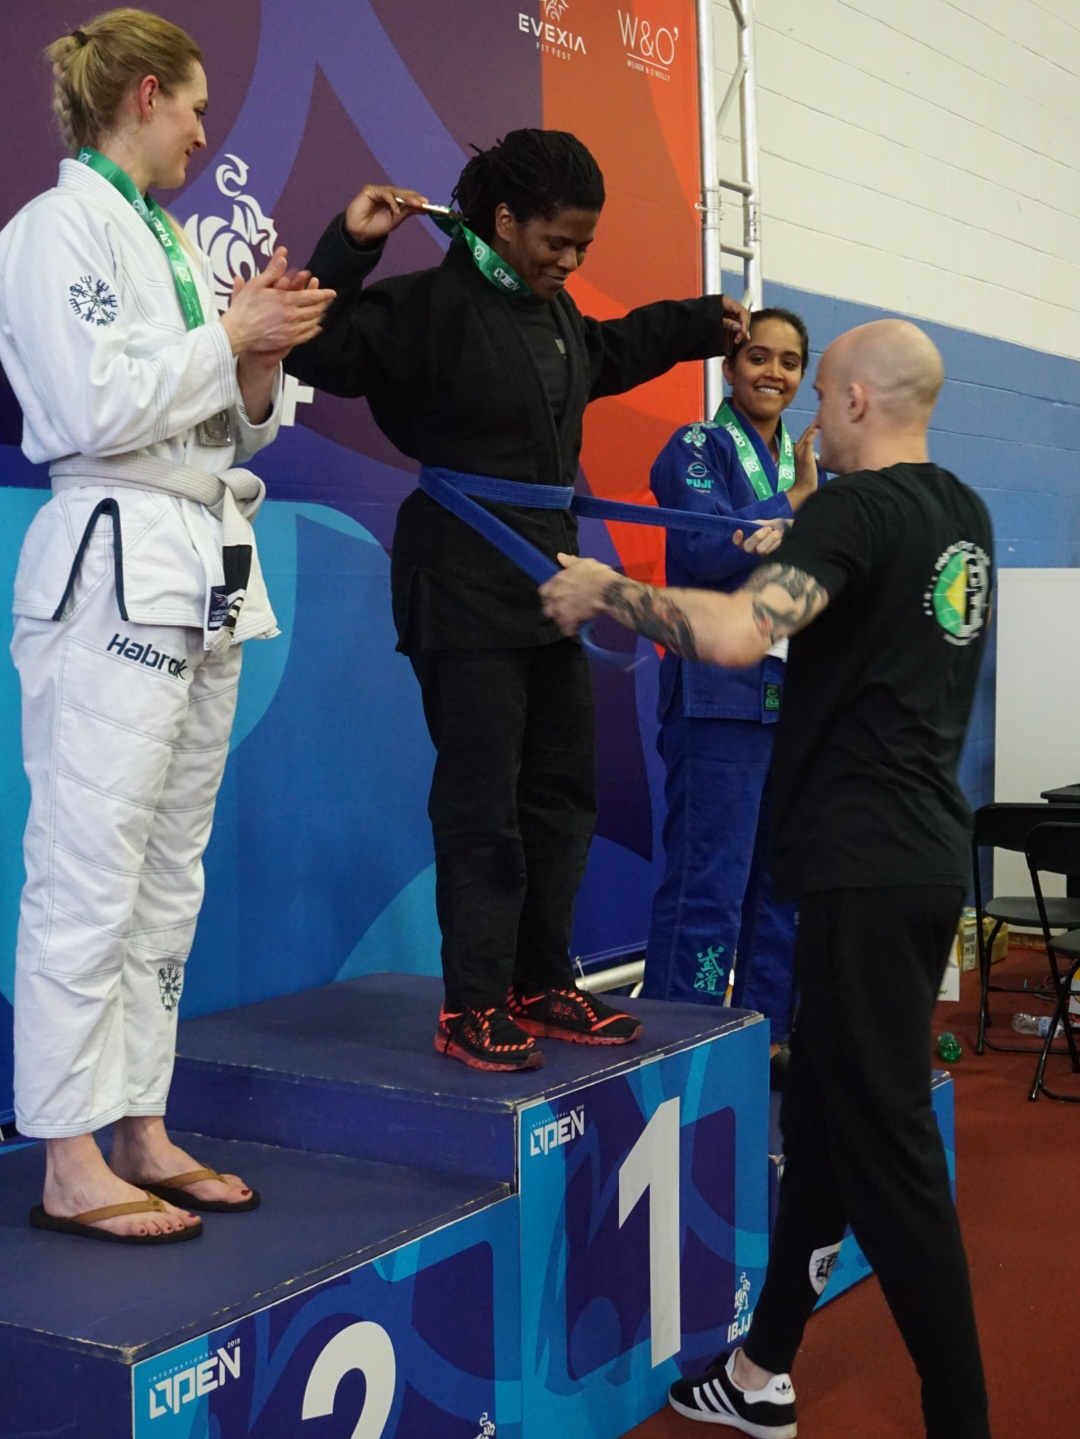 For her dauntless efforts and consistent training, Sydney Portis earned her blue belt on the podium following her matches.